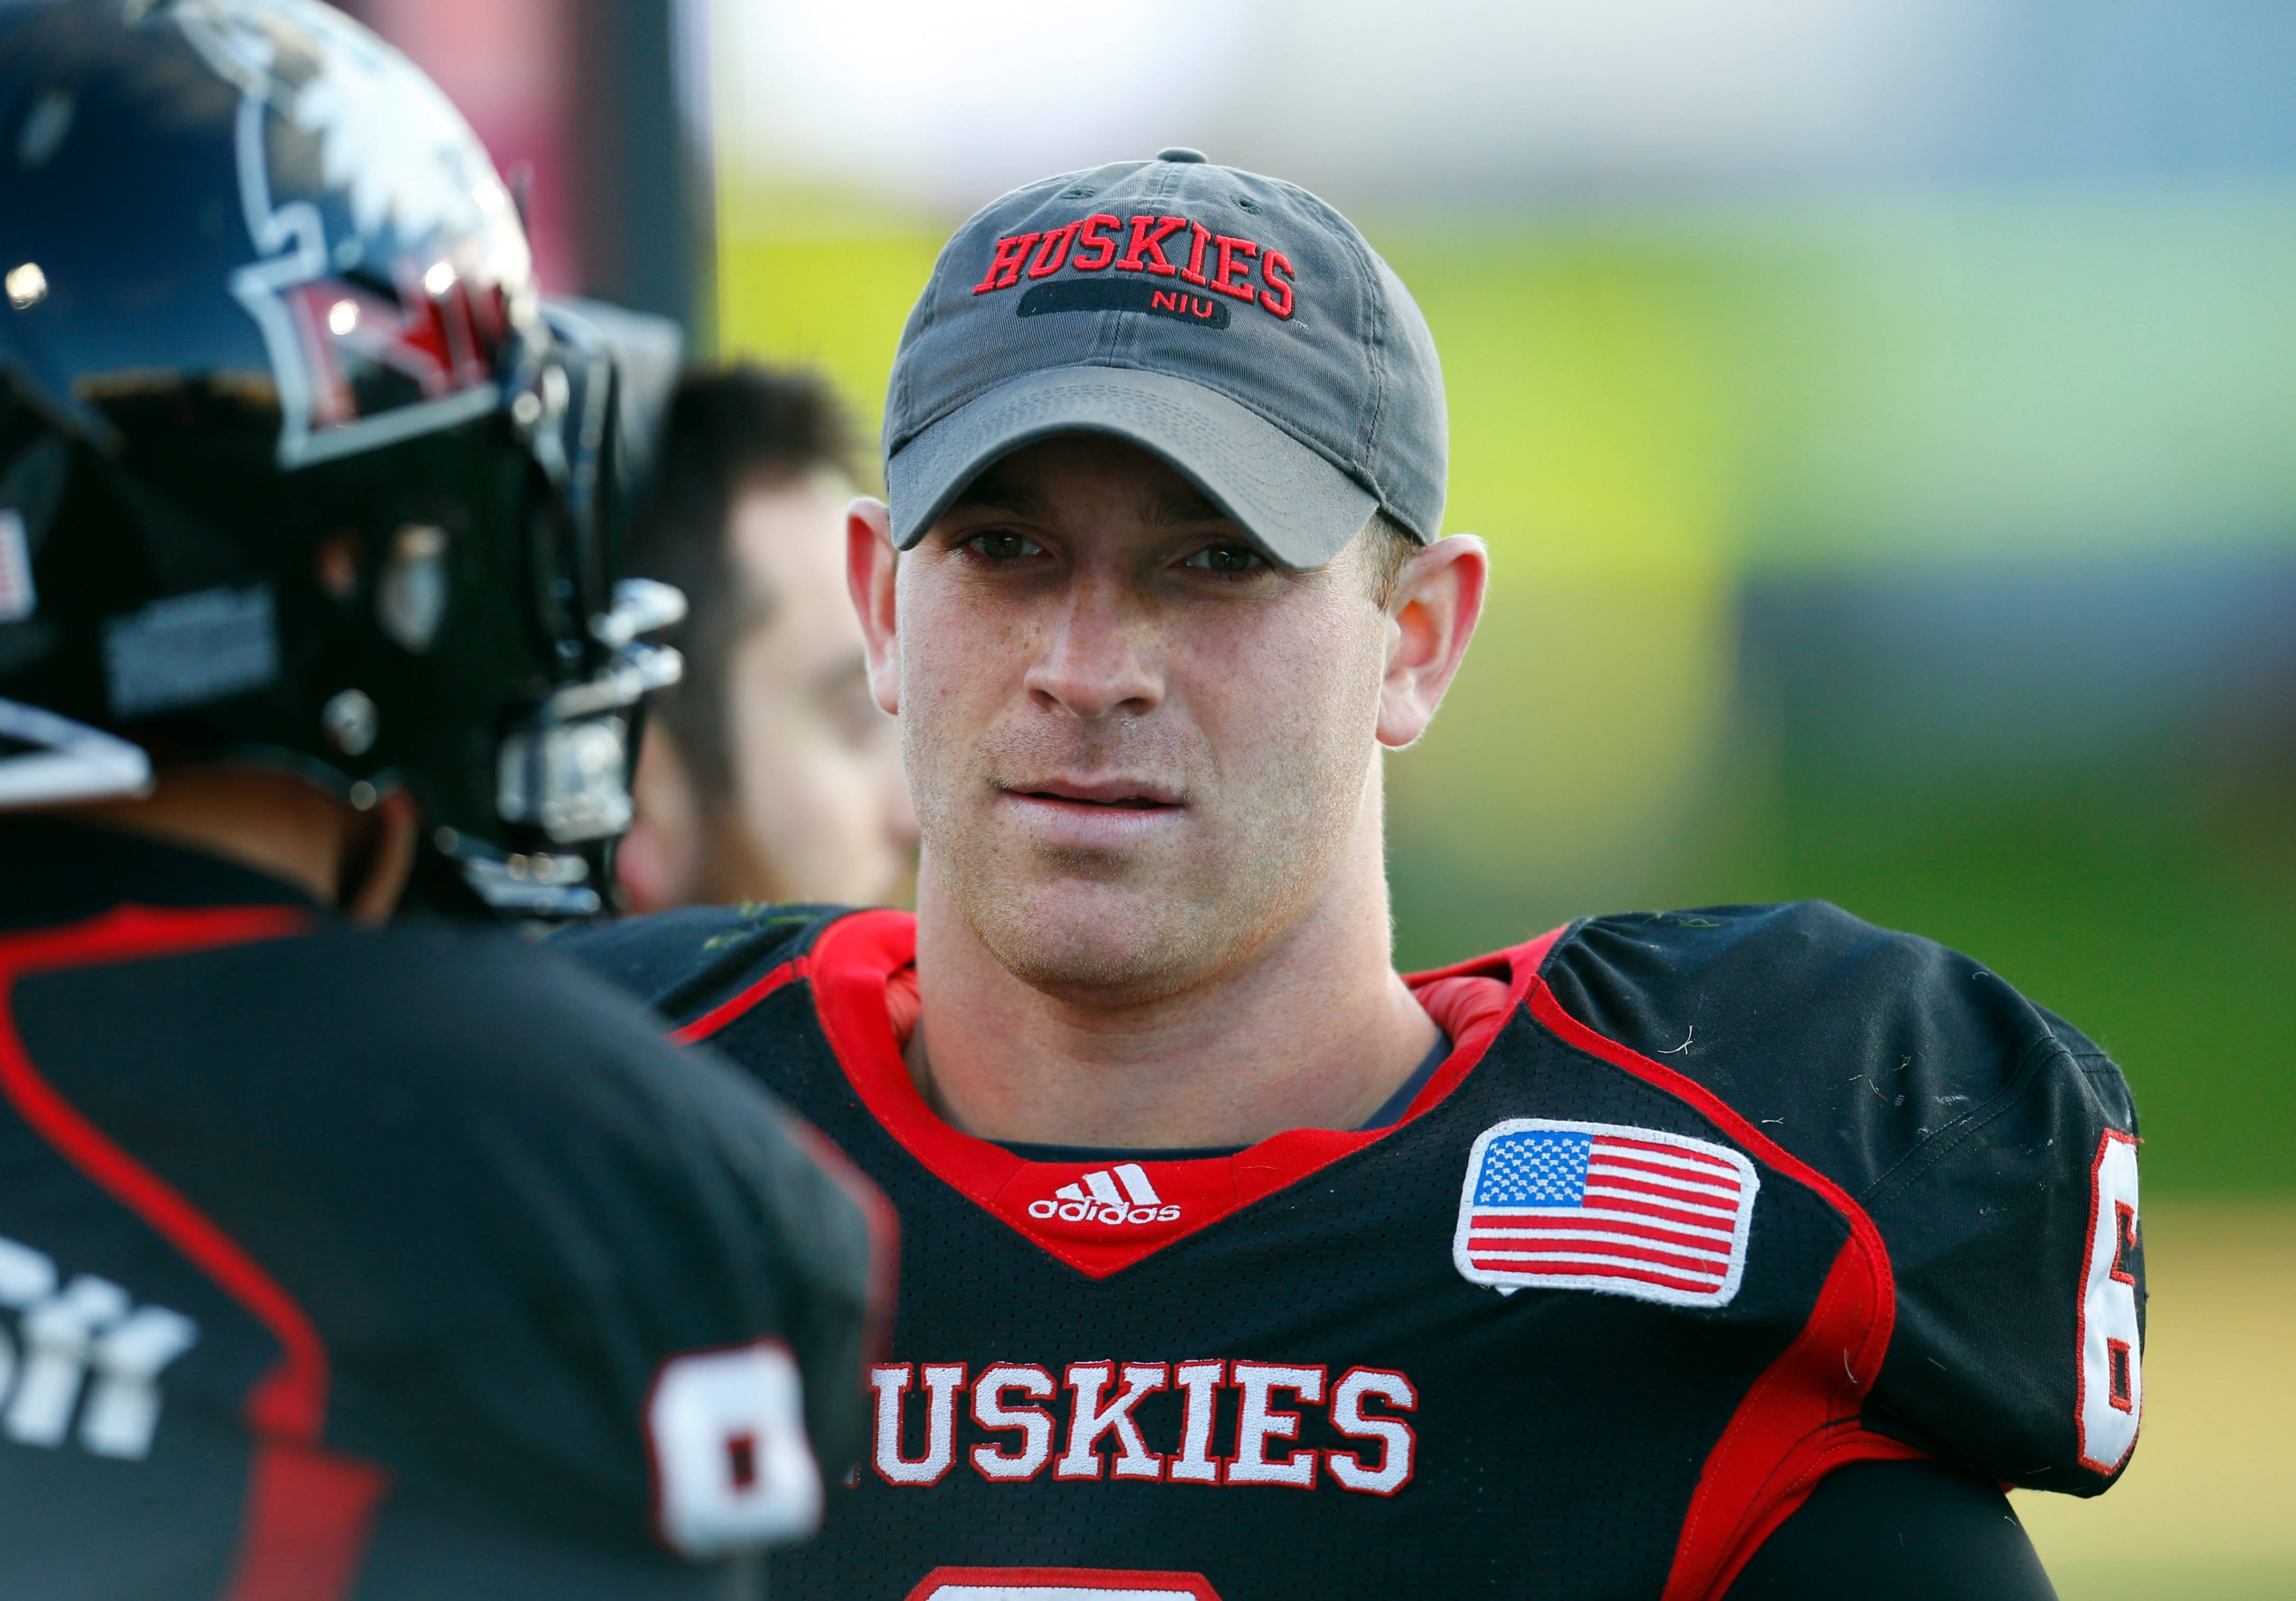 Although he was not drafted, former Northern Illinois quarterback Jordan Lynch signed with the Chicago Bears as a free agent.